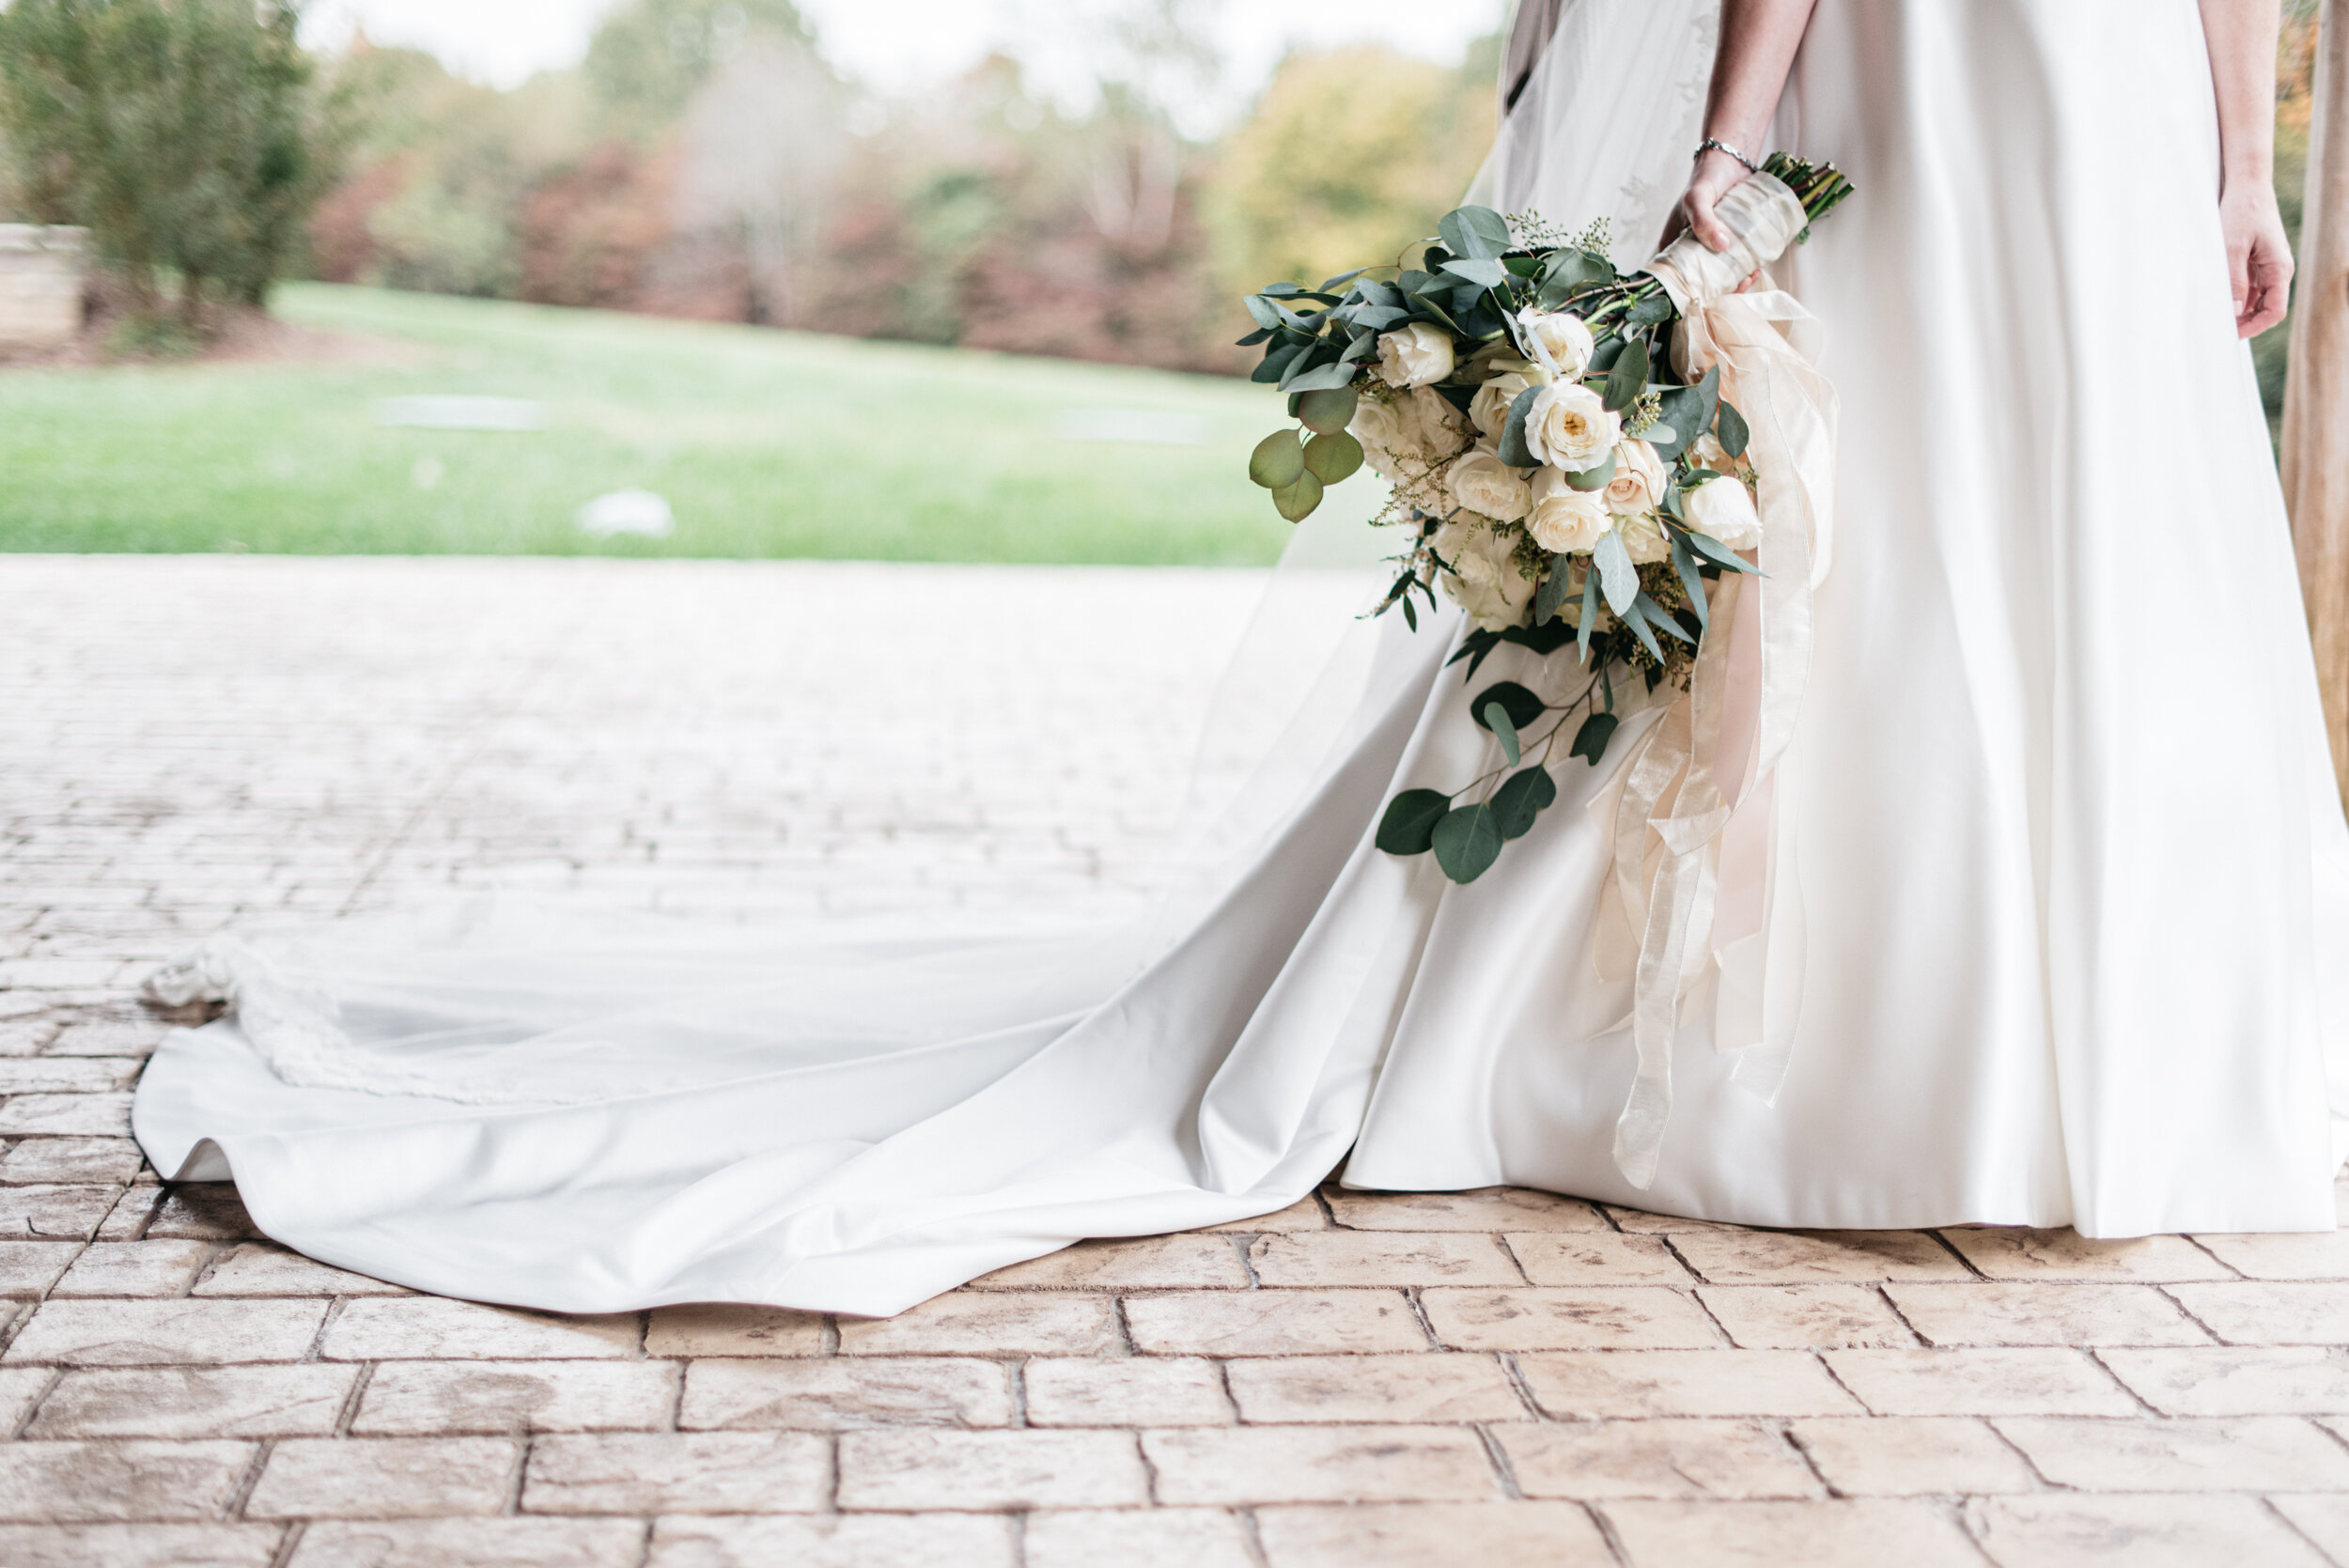 Eucalyptus and White Roses Bouquet